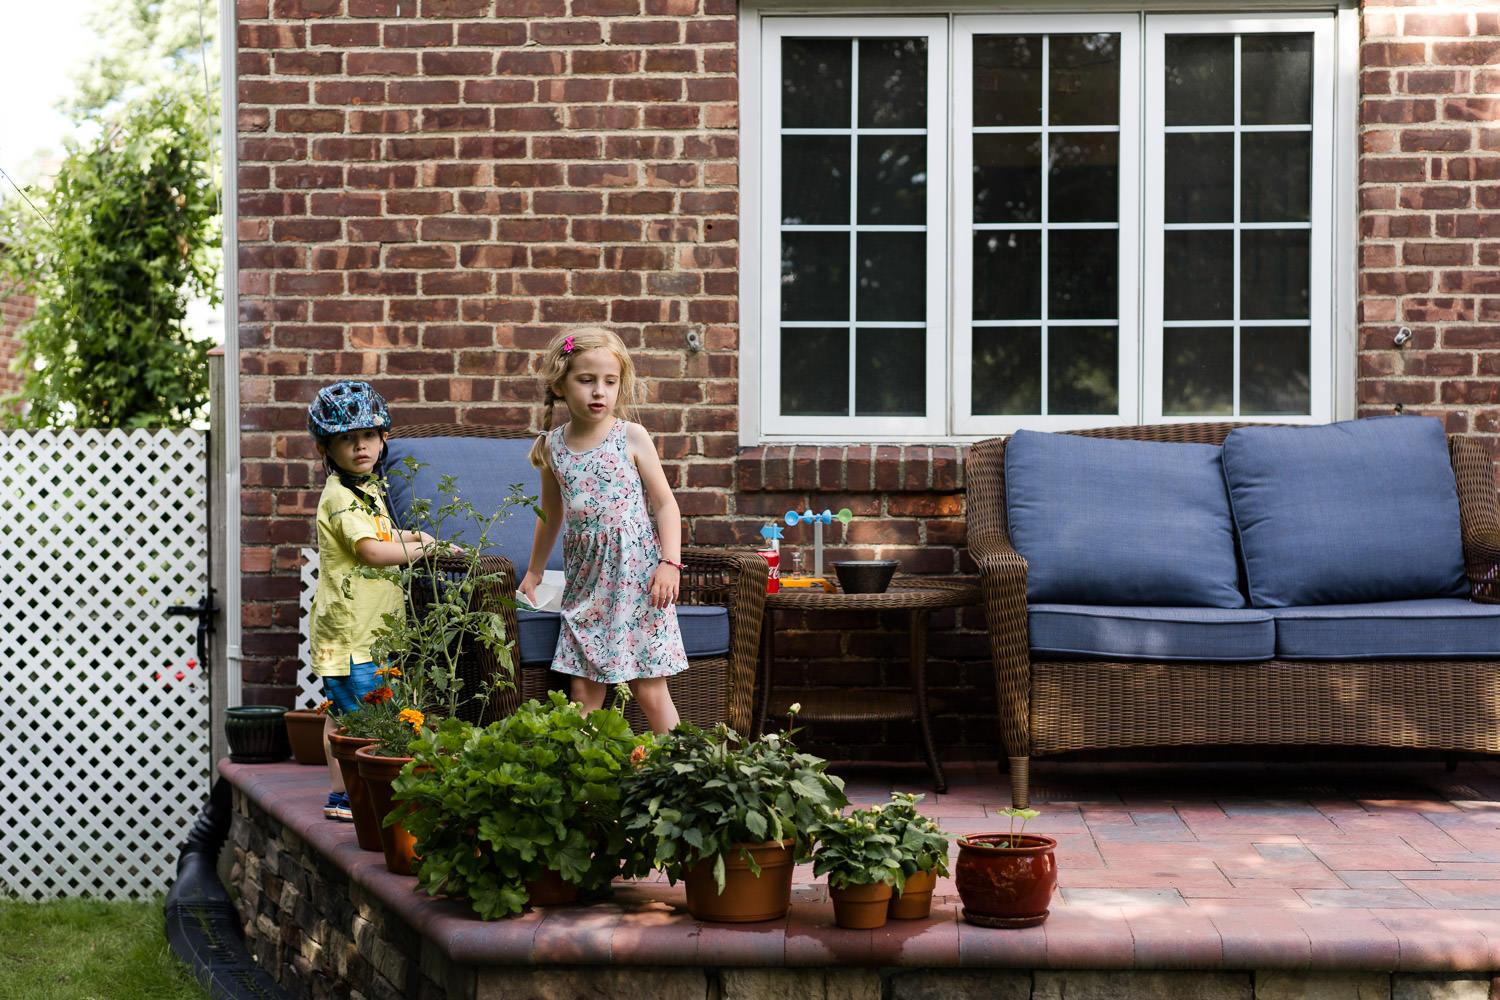 Two children play on a porch.